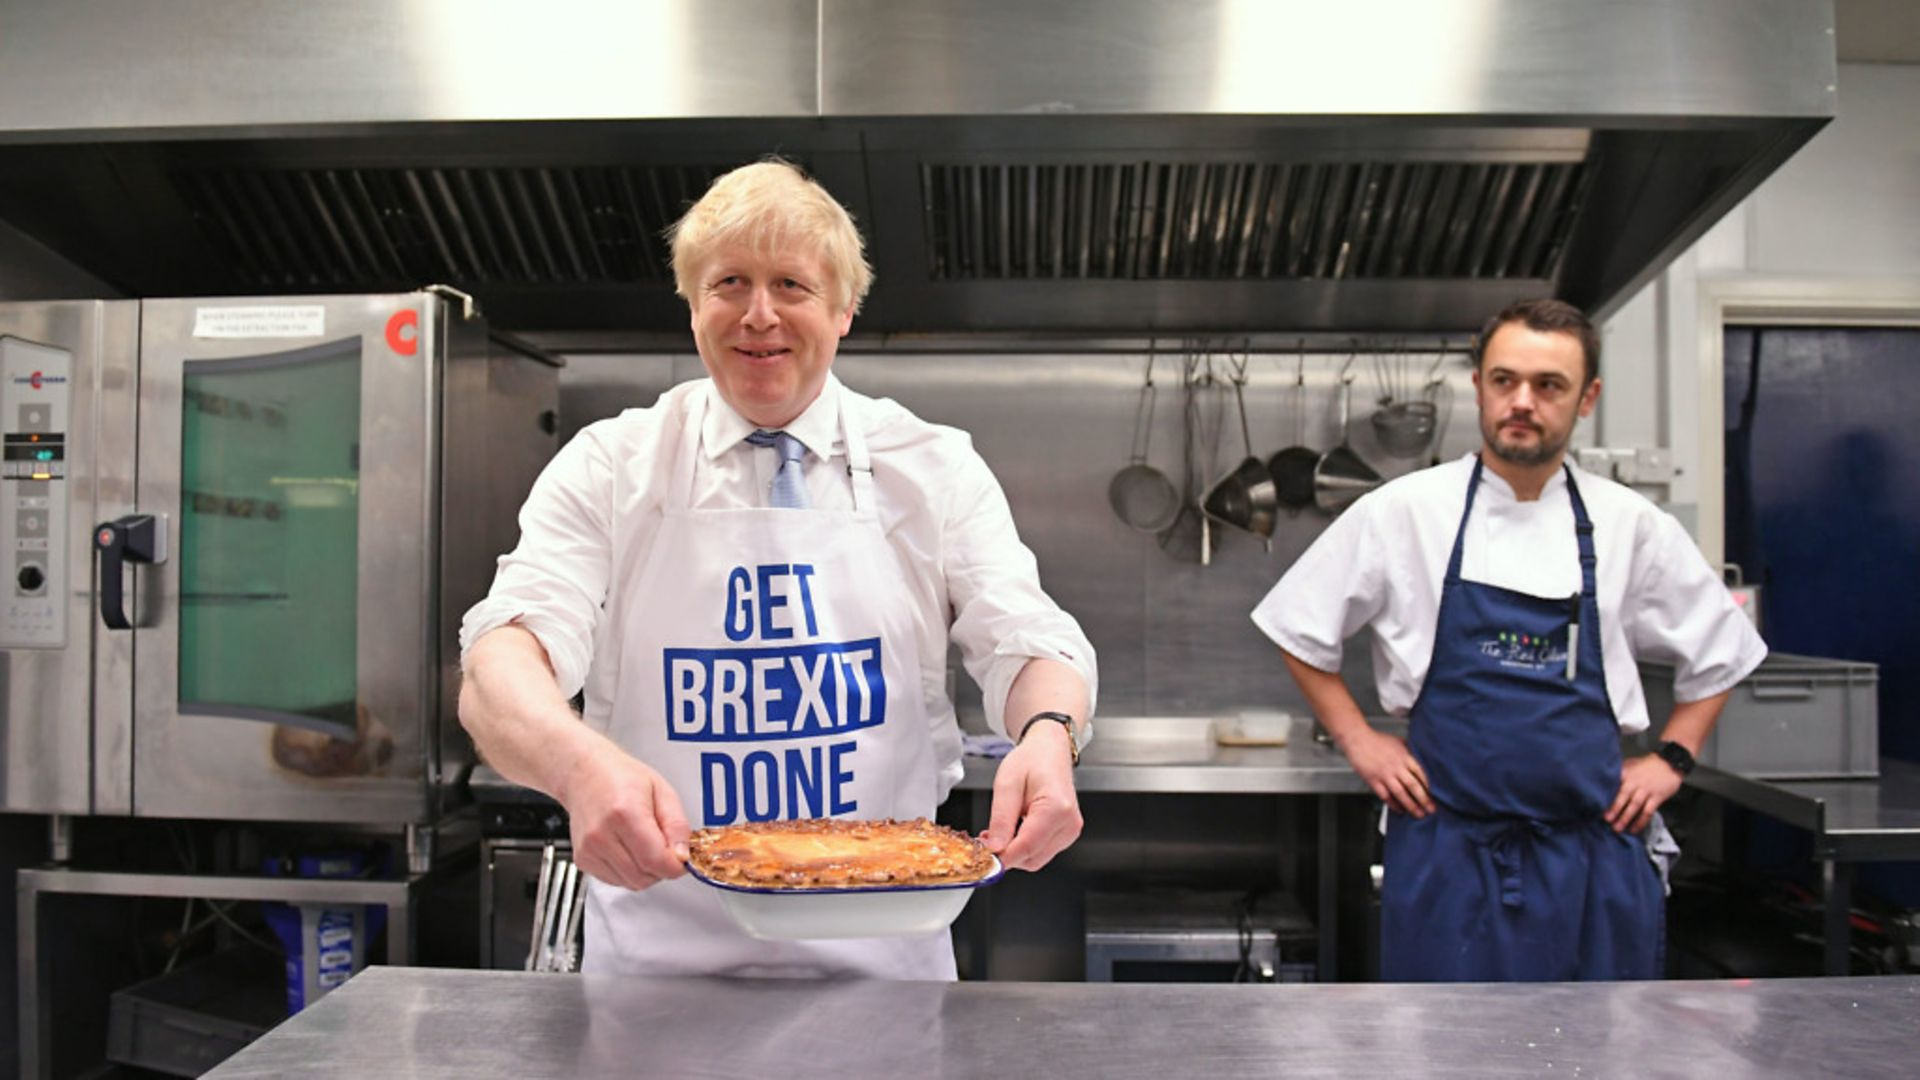 Prime Minister Boris Johnson holds a freshly baked pie while wearing a 'get Brexit done' apron. - Credit: Stefan Rousseau/PA.